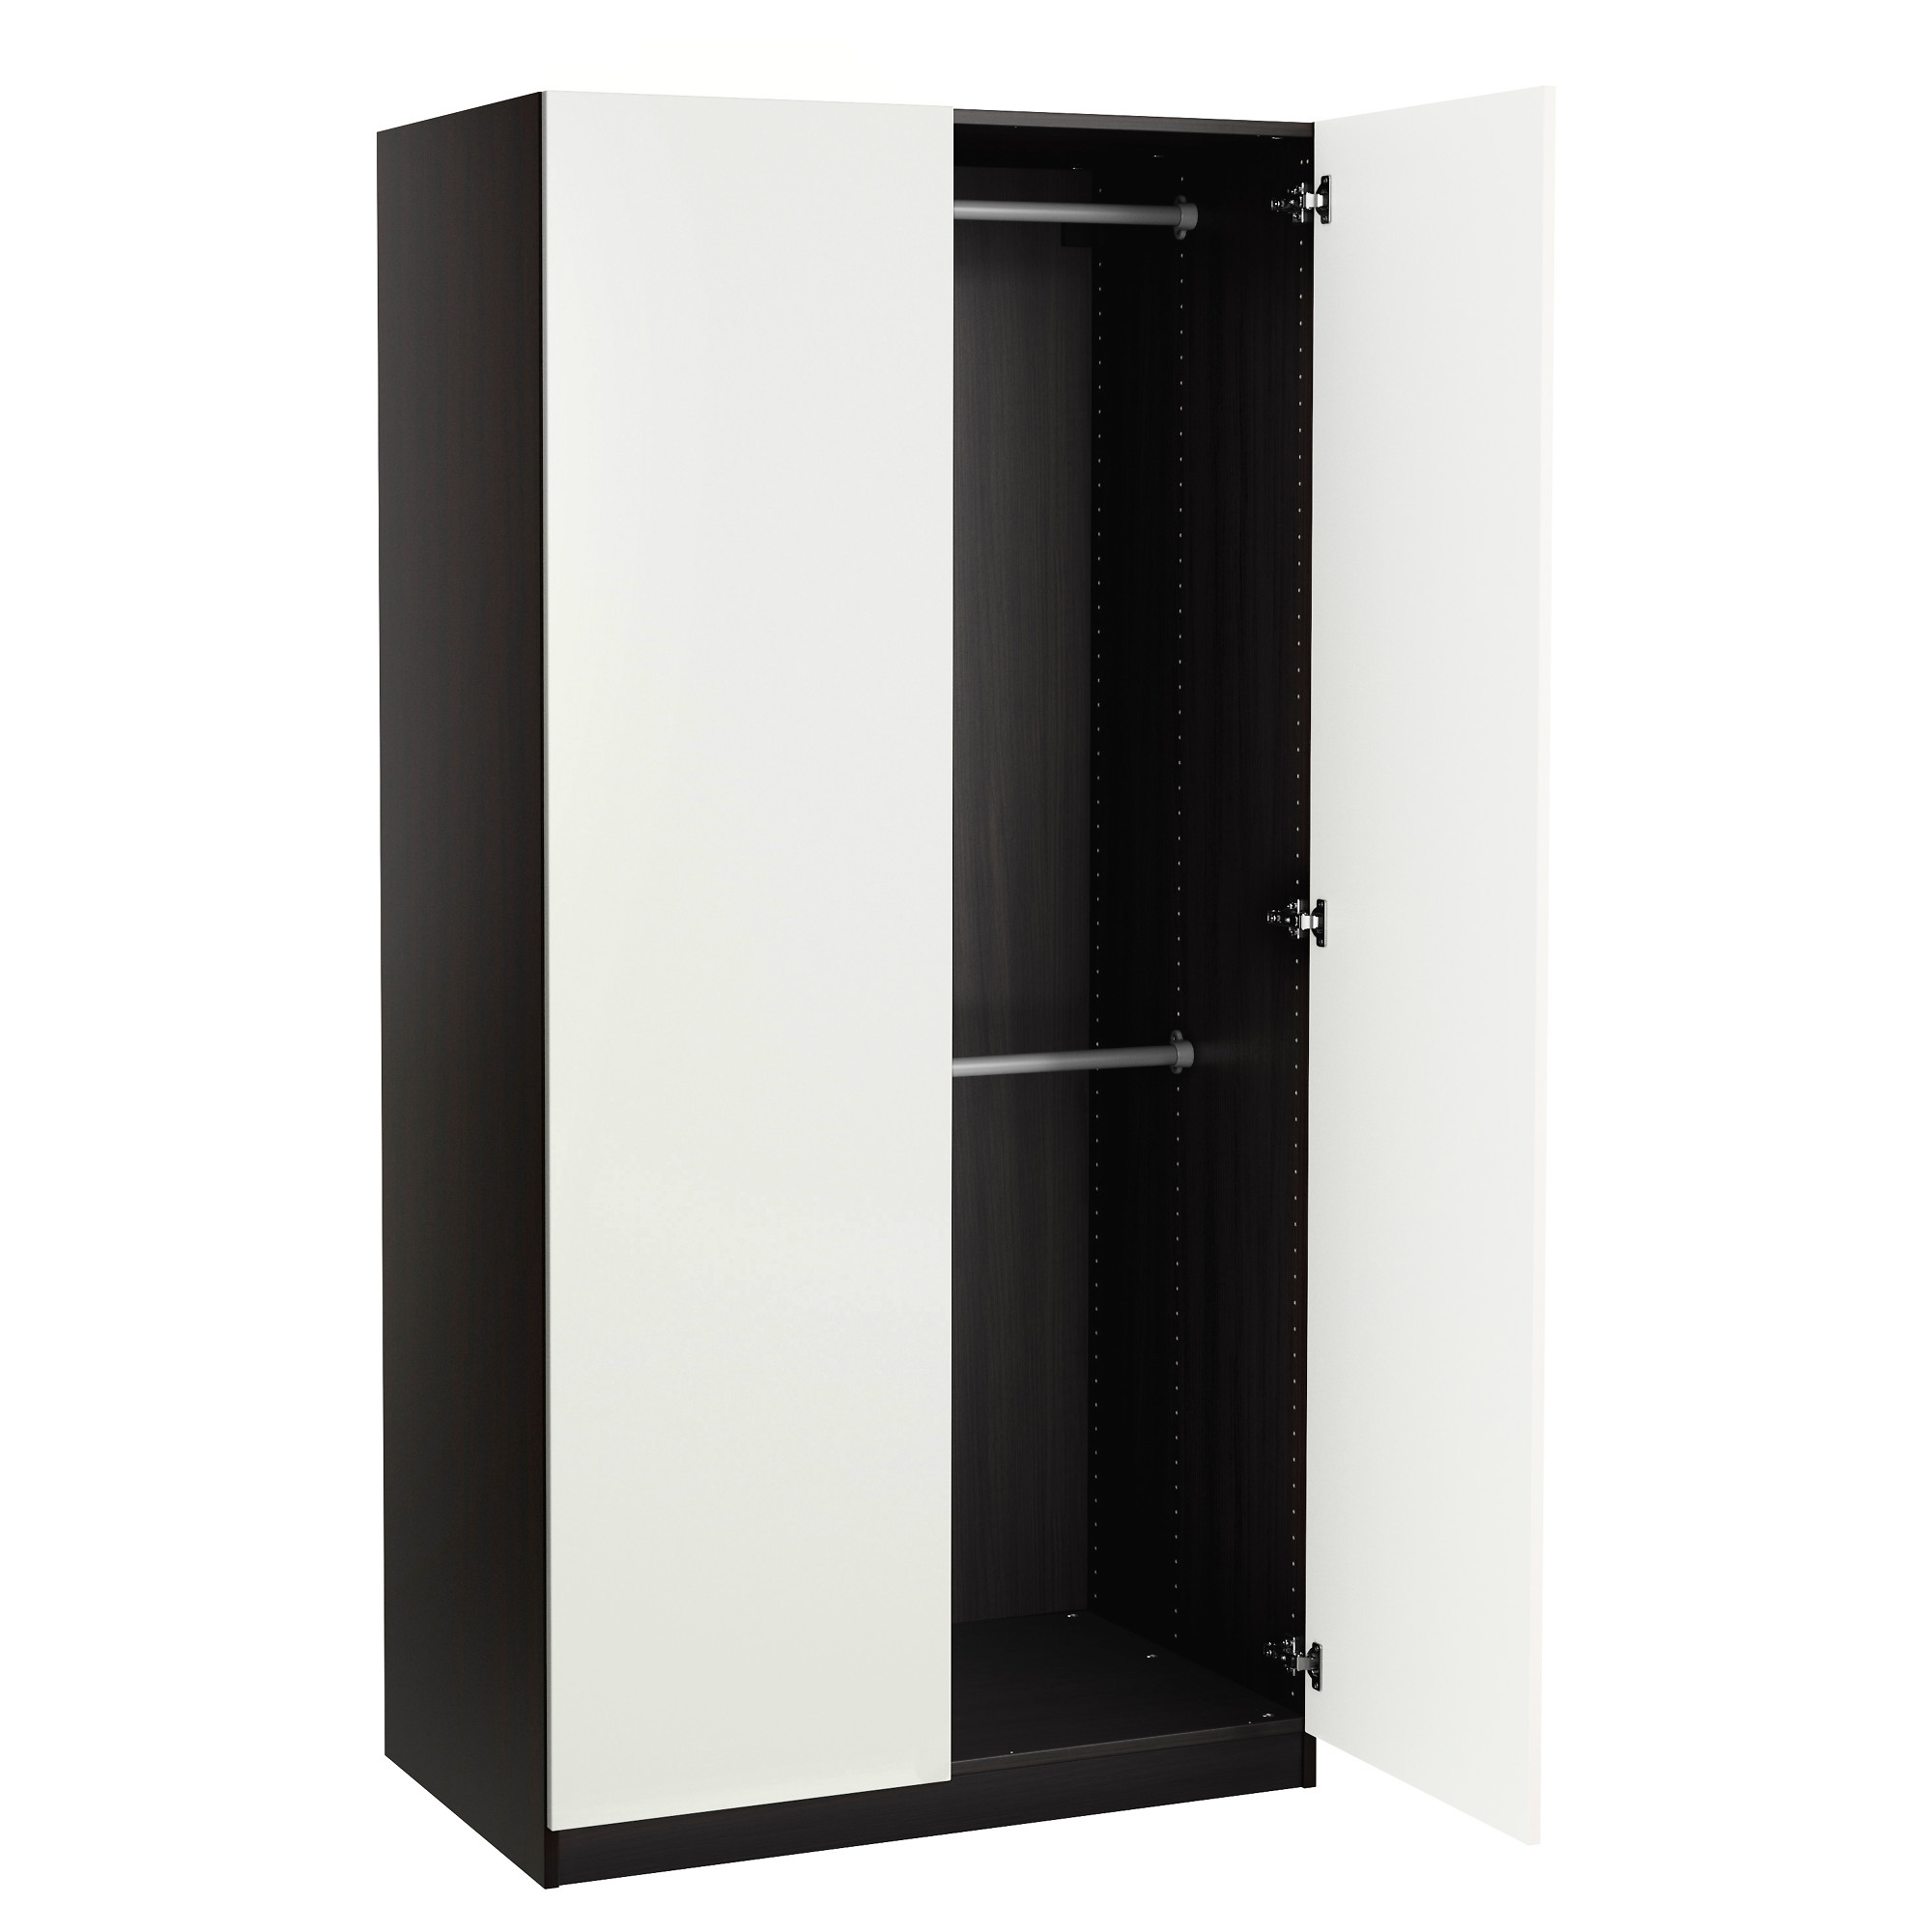 Single Black Wardrobes Intended For Trendy Pax Wardrobes (View 4 of 15)